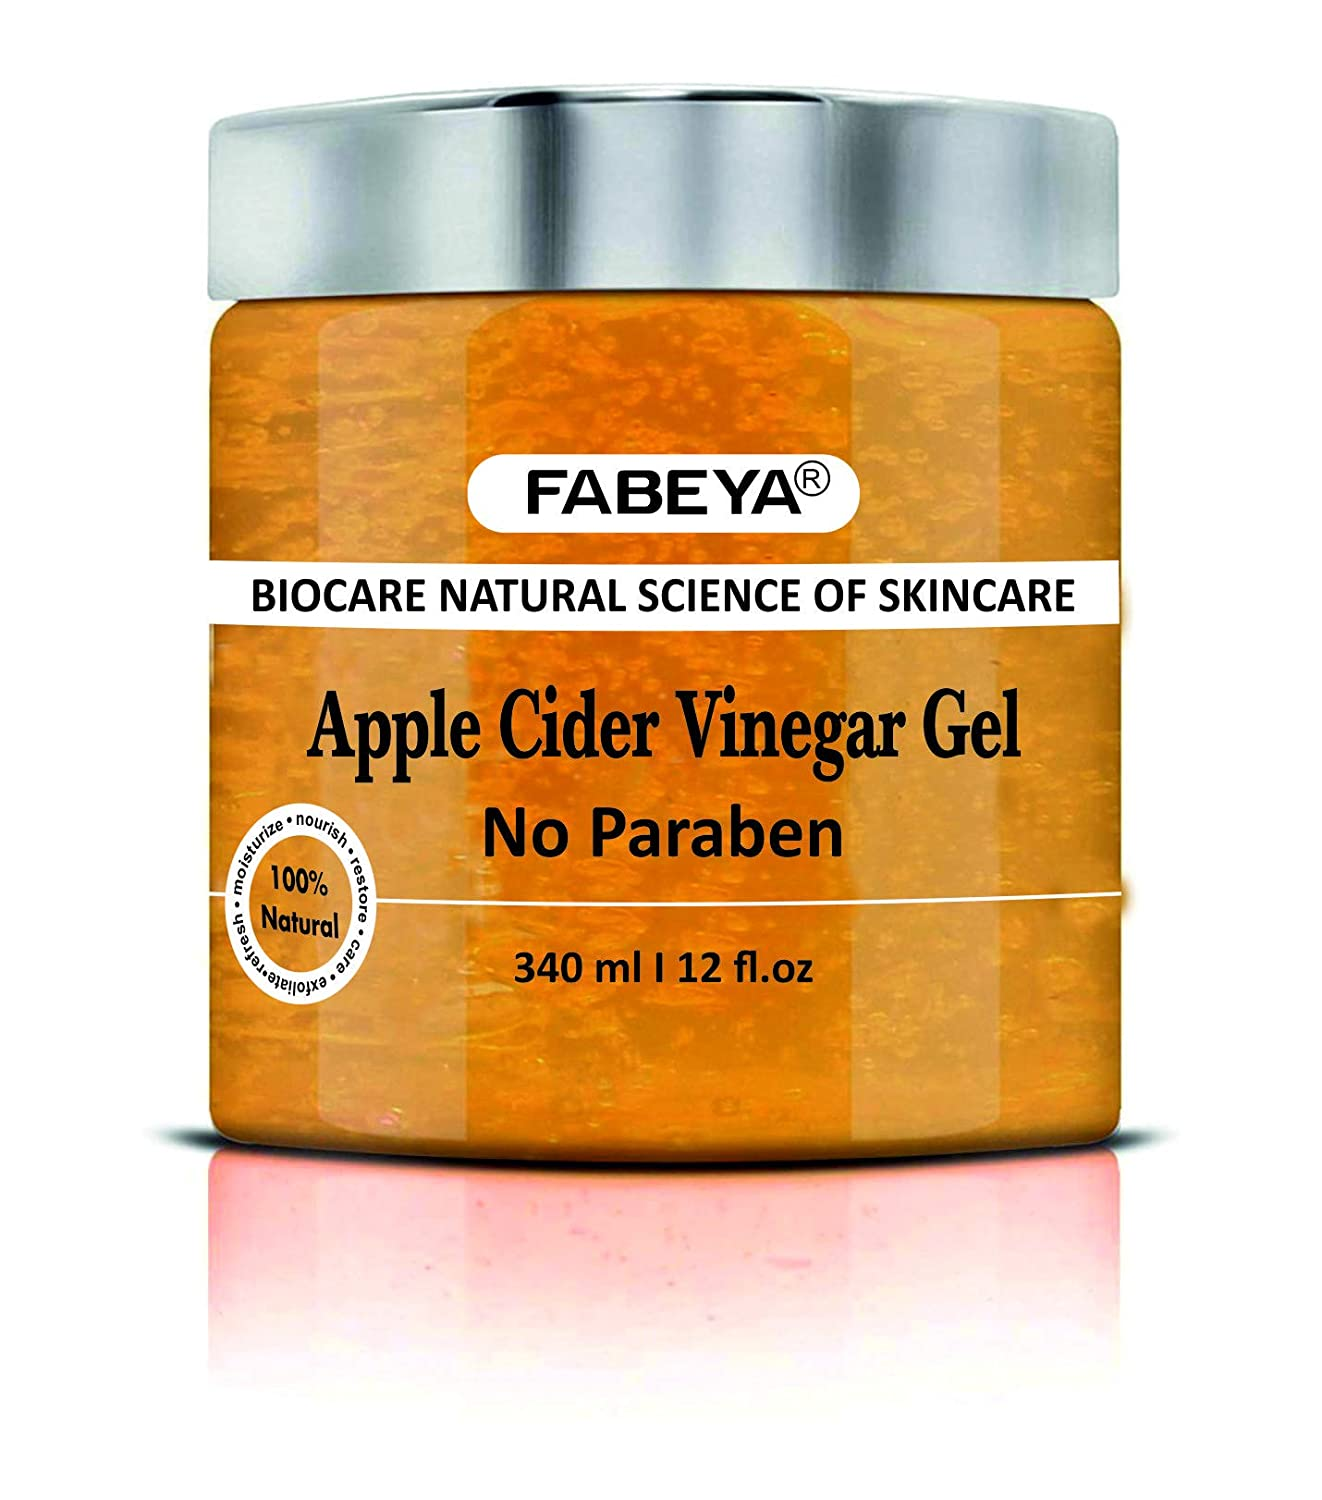 ORGANIC NATURAL APPLE CIDER VINEGAR FABEYA BIOCARE GEL - NO PARABENS AND SULPHATES 340 ML